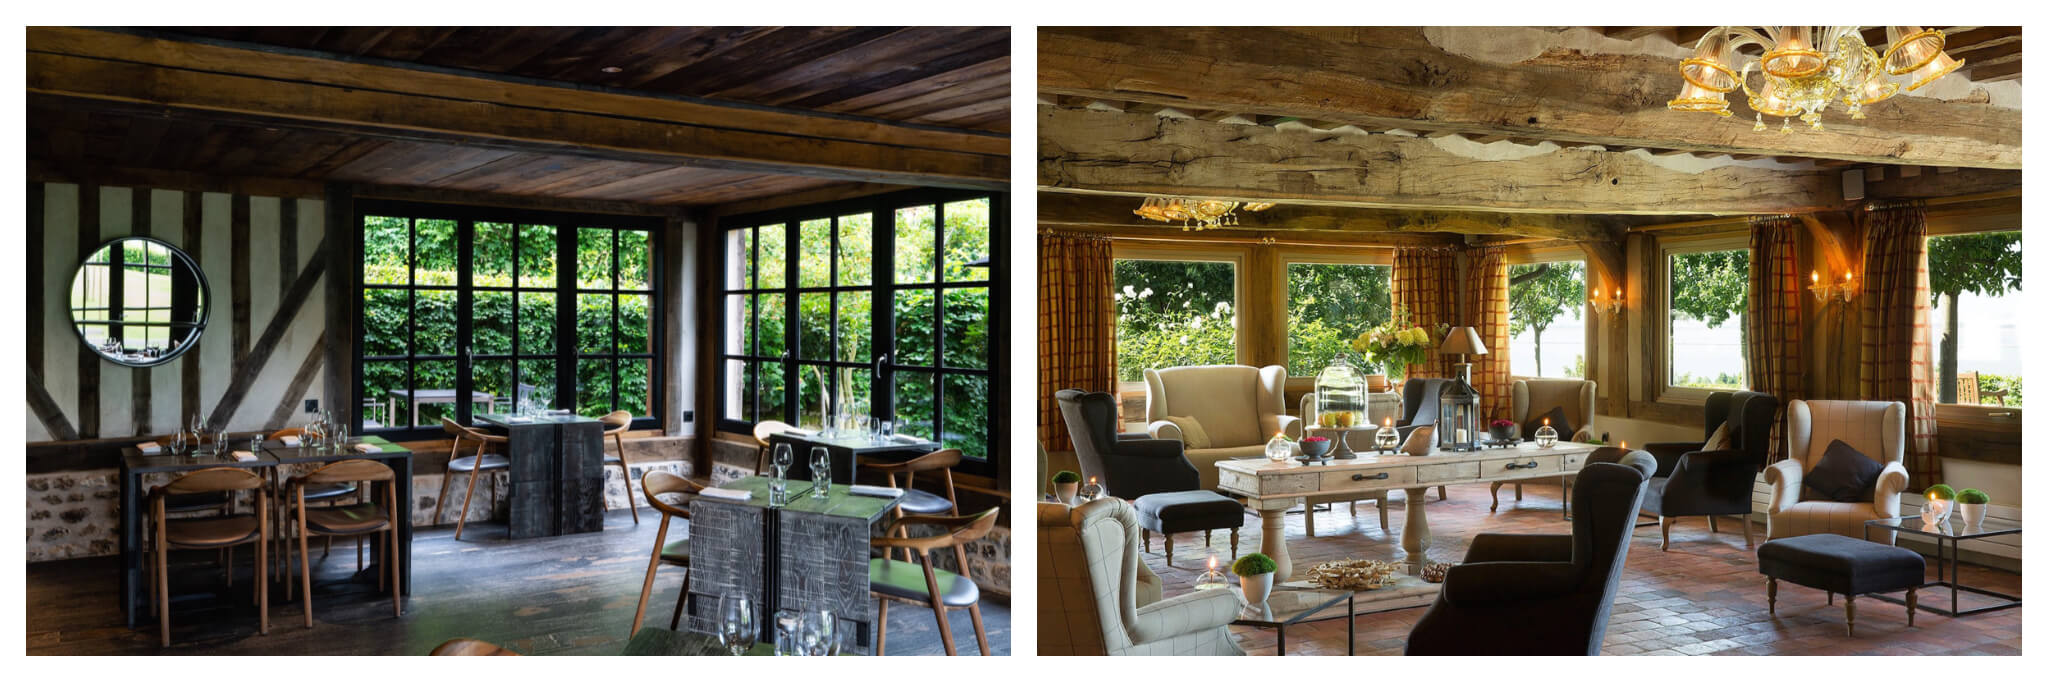 Left, the dining room with half-timbered walls at La Ferme Saint Simeon in Normany. Right: the bright and airy living area at the hotel.